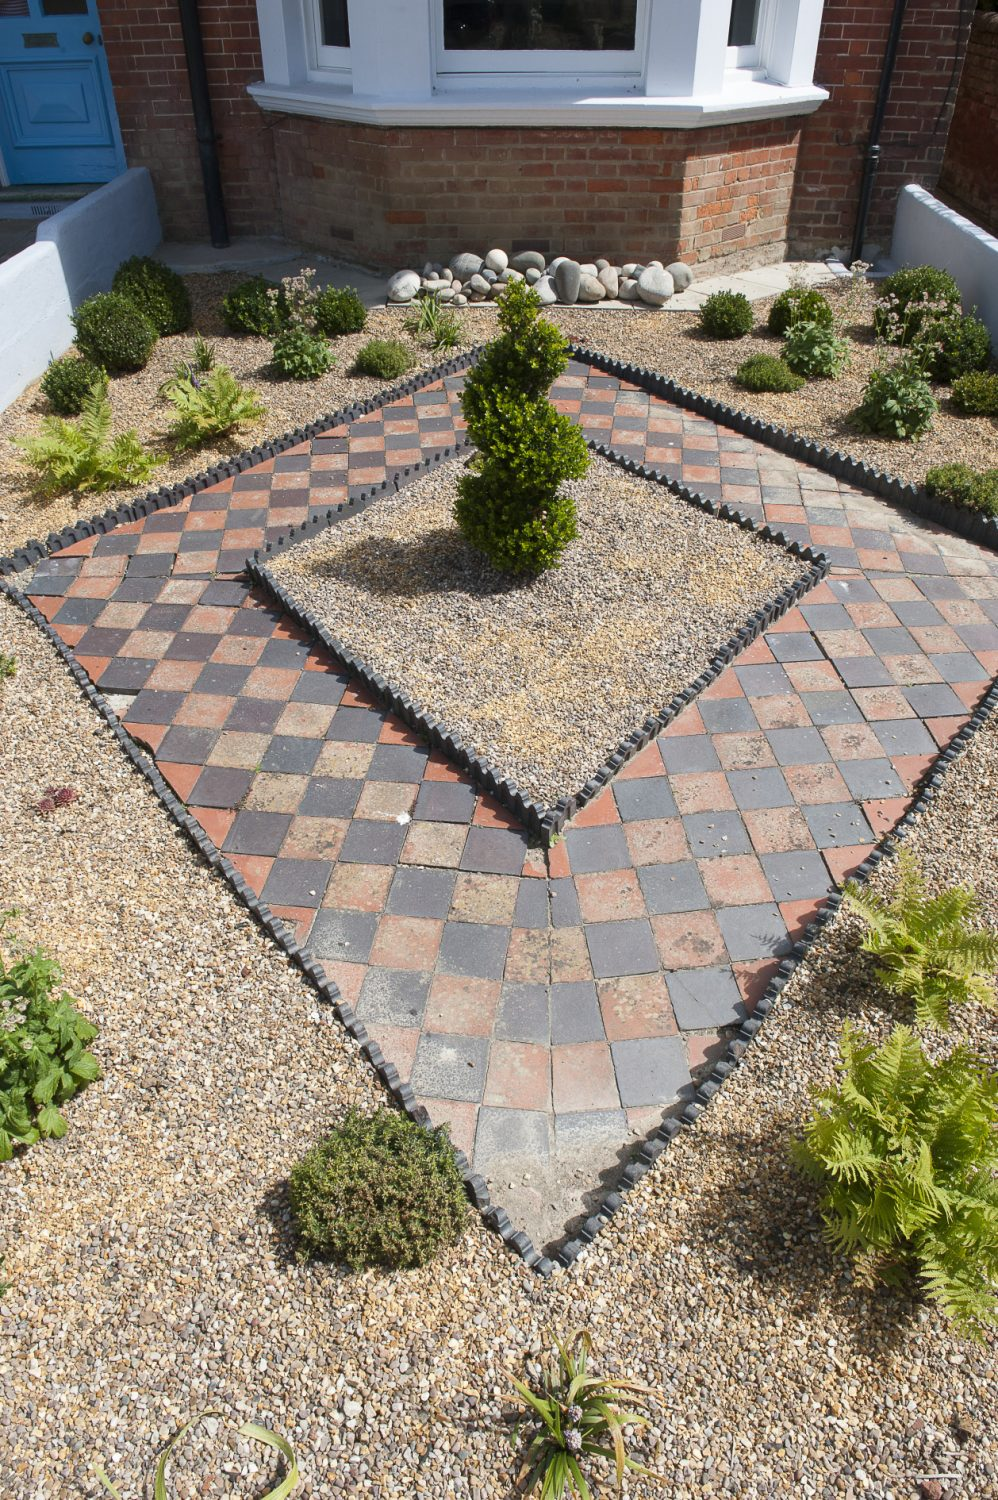 Annette has created a symmetrically stylish front garden to welcome visitors to her home